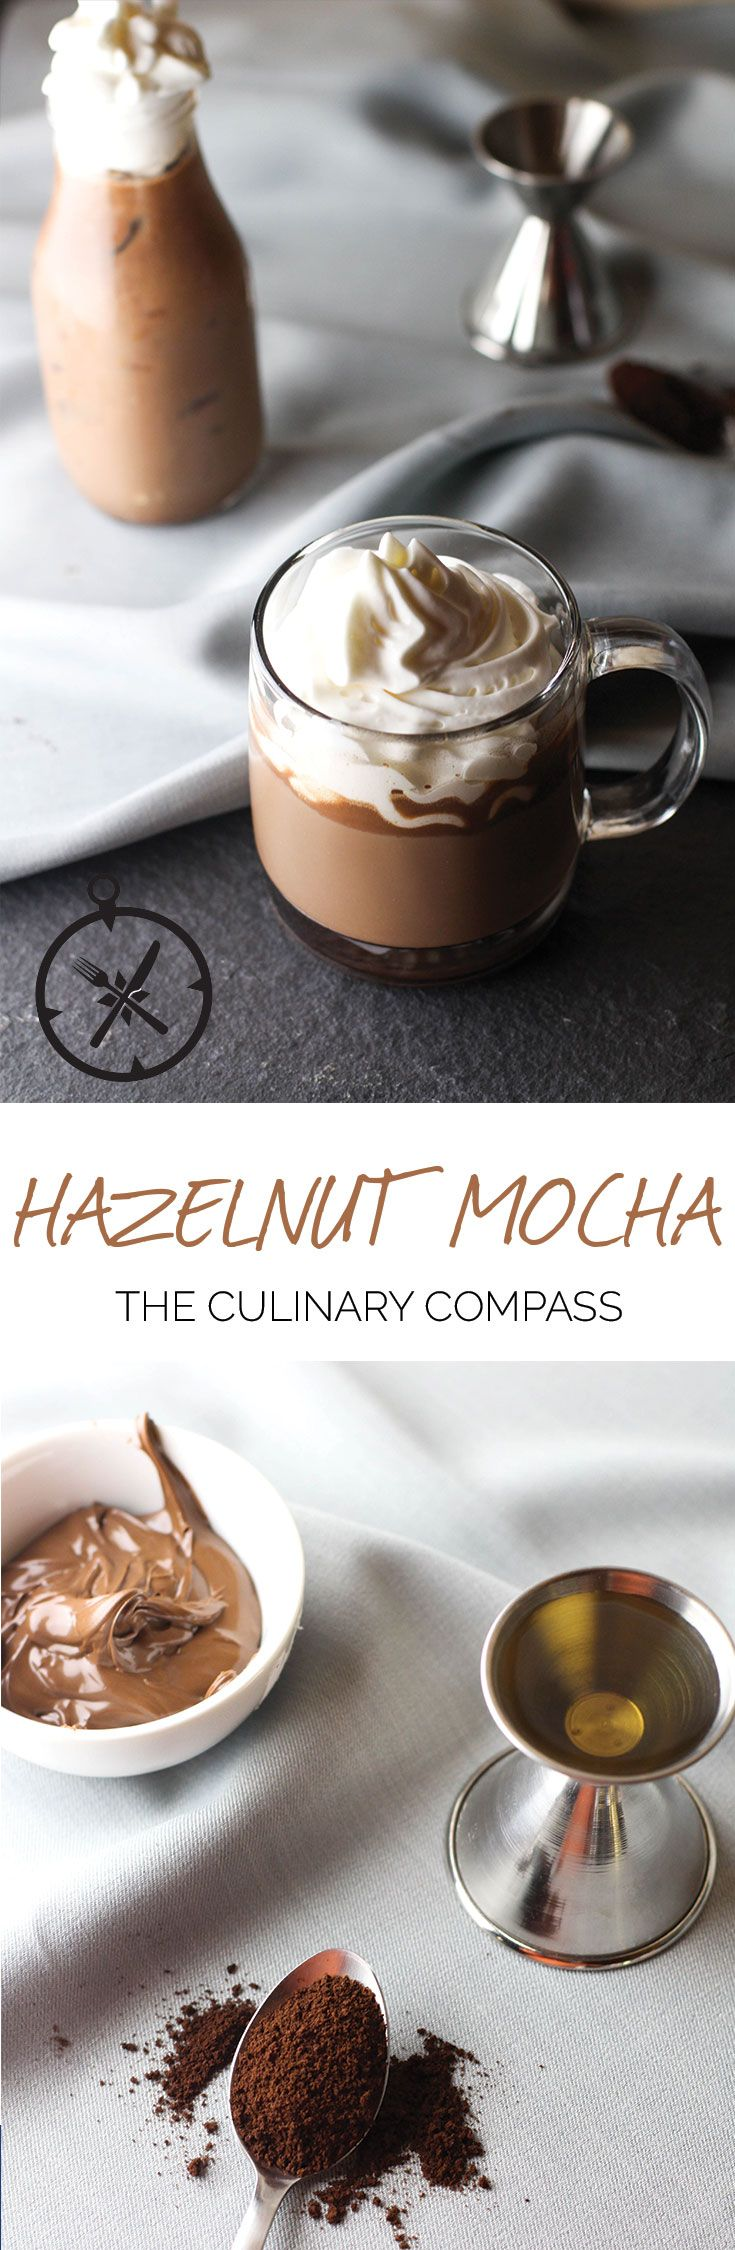 This Hazelnut Mocha is such an easy drink to make. You can never go wrong with a hazelnut, chocolate, and coffee combo! via @culinarycompass